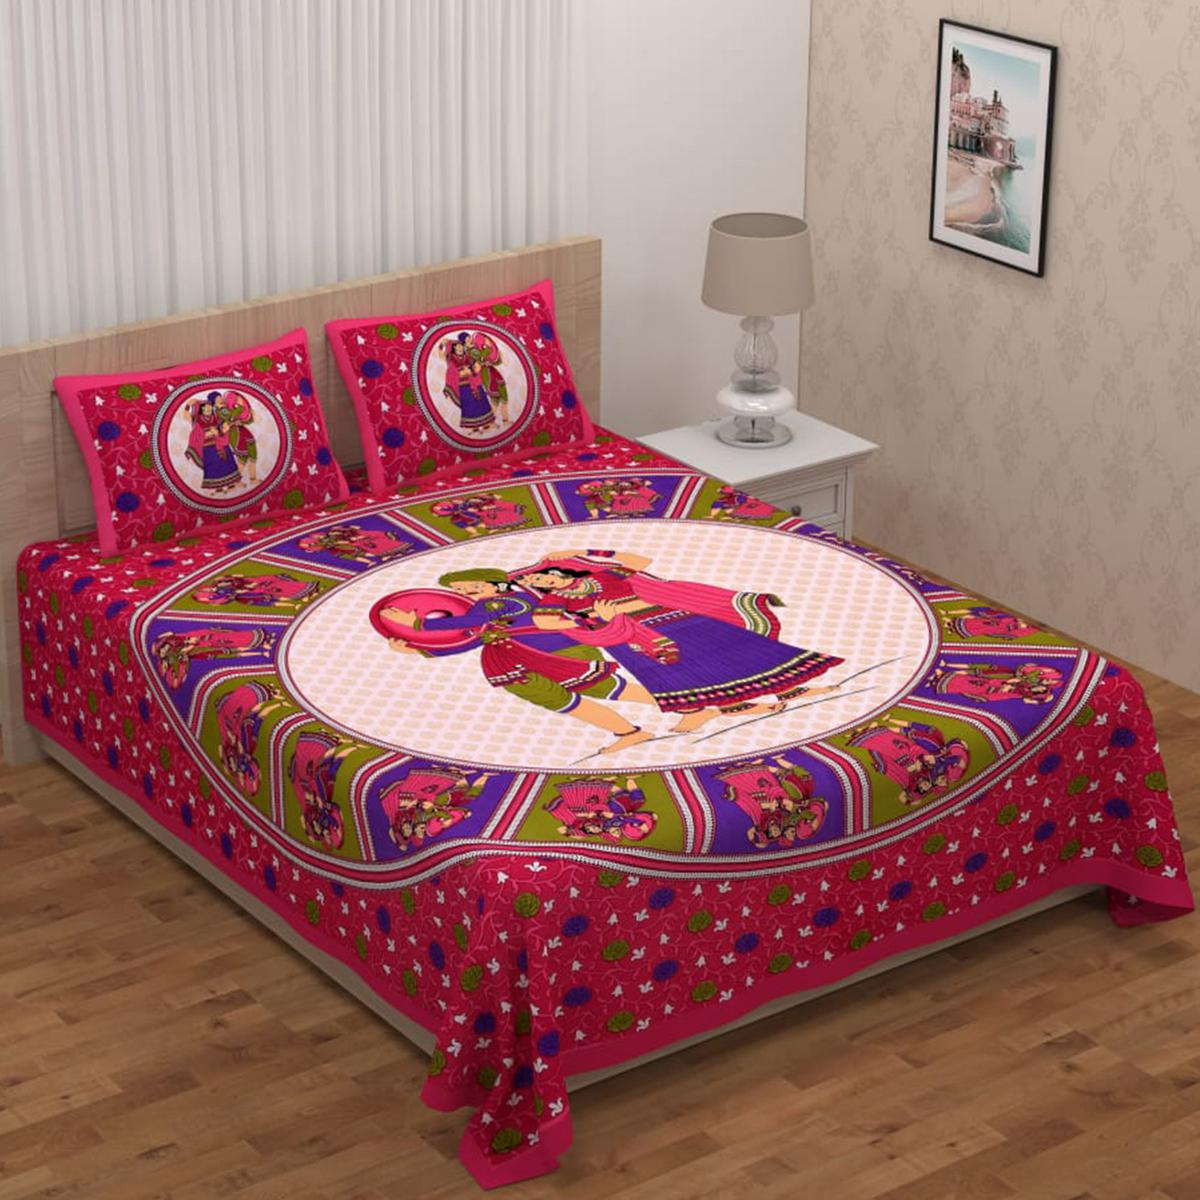 Adirav - Pink Colored Printed Double Jaipuri Pure Cotton Bedsheet With 2 Pillow Cover.